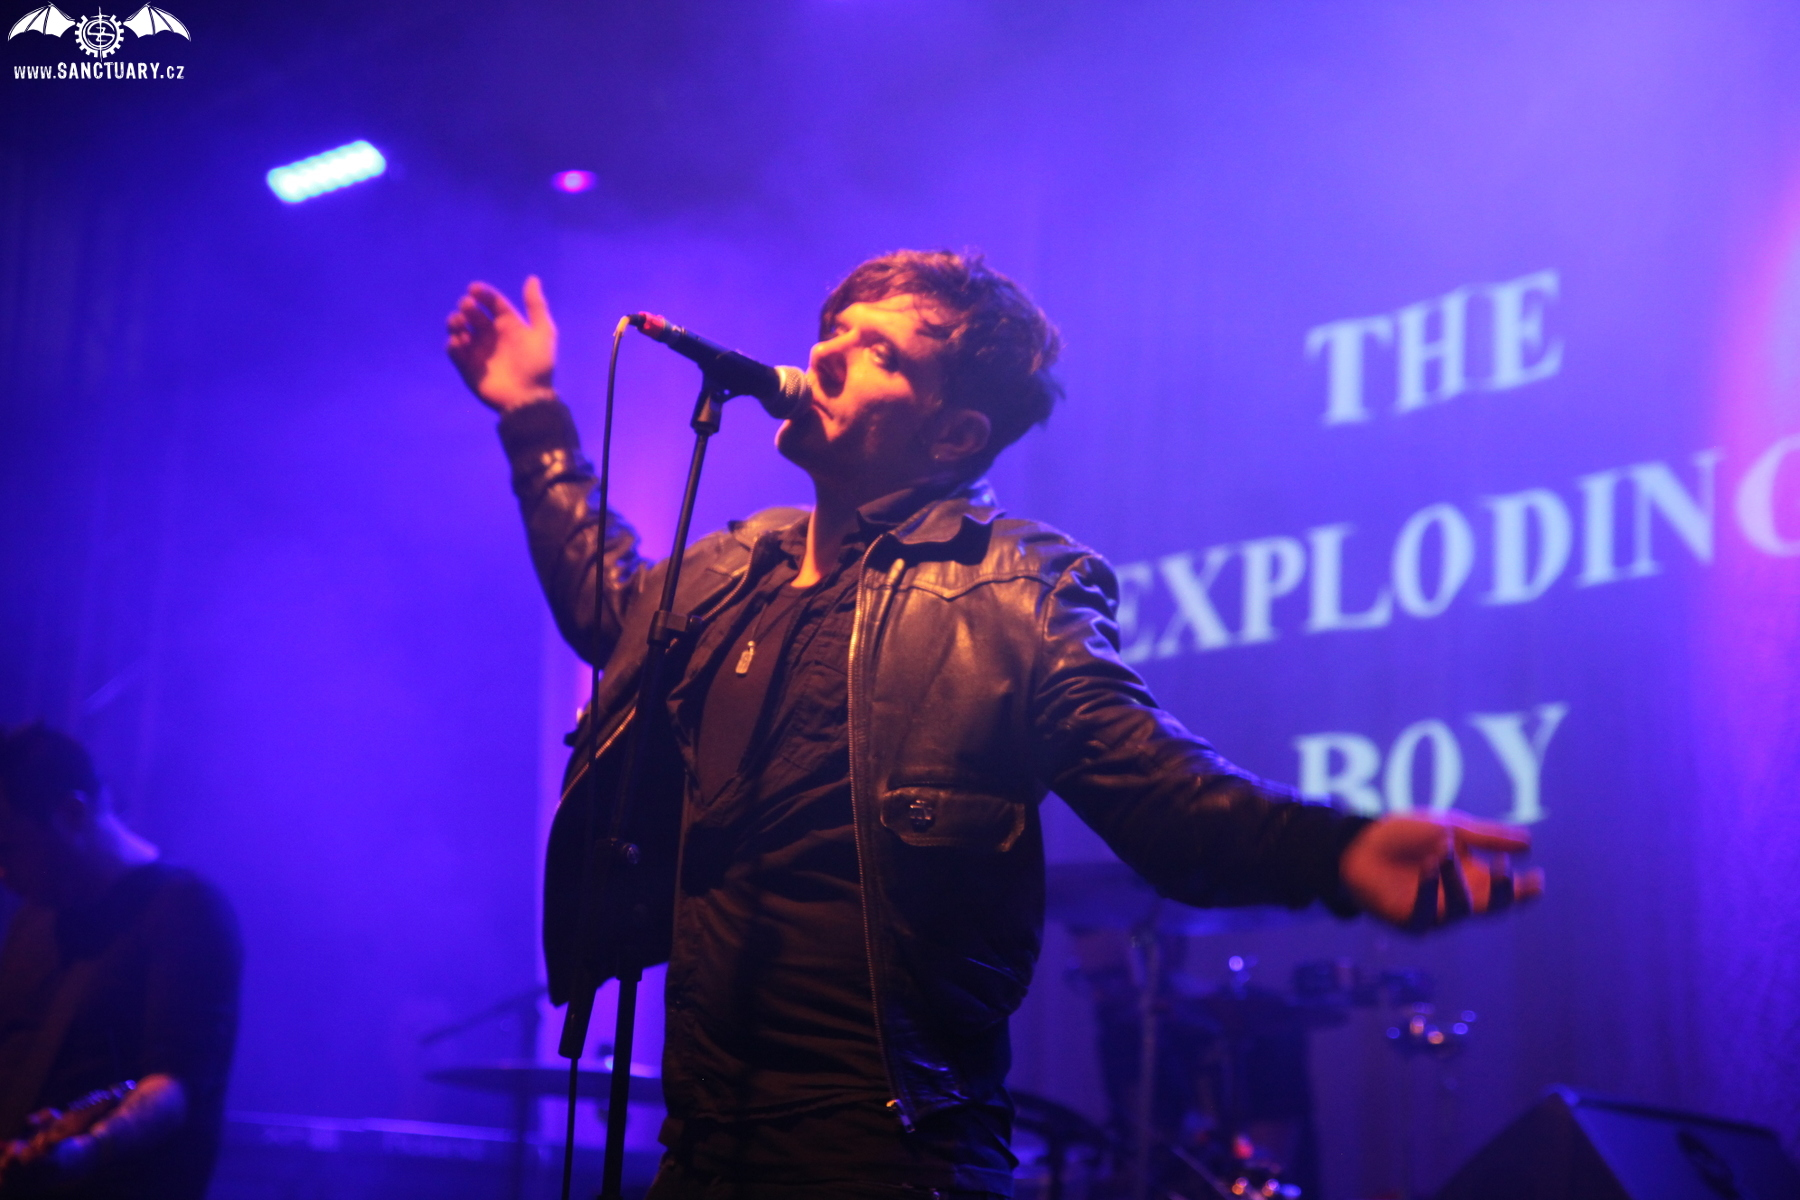 The Exploding Boy